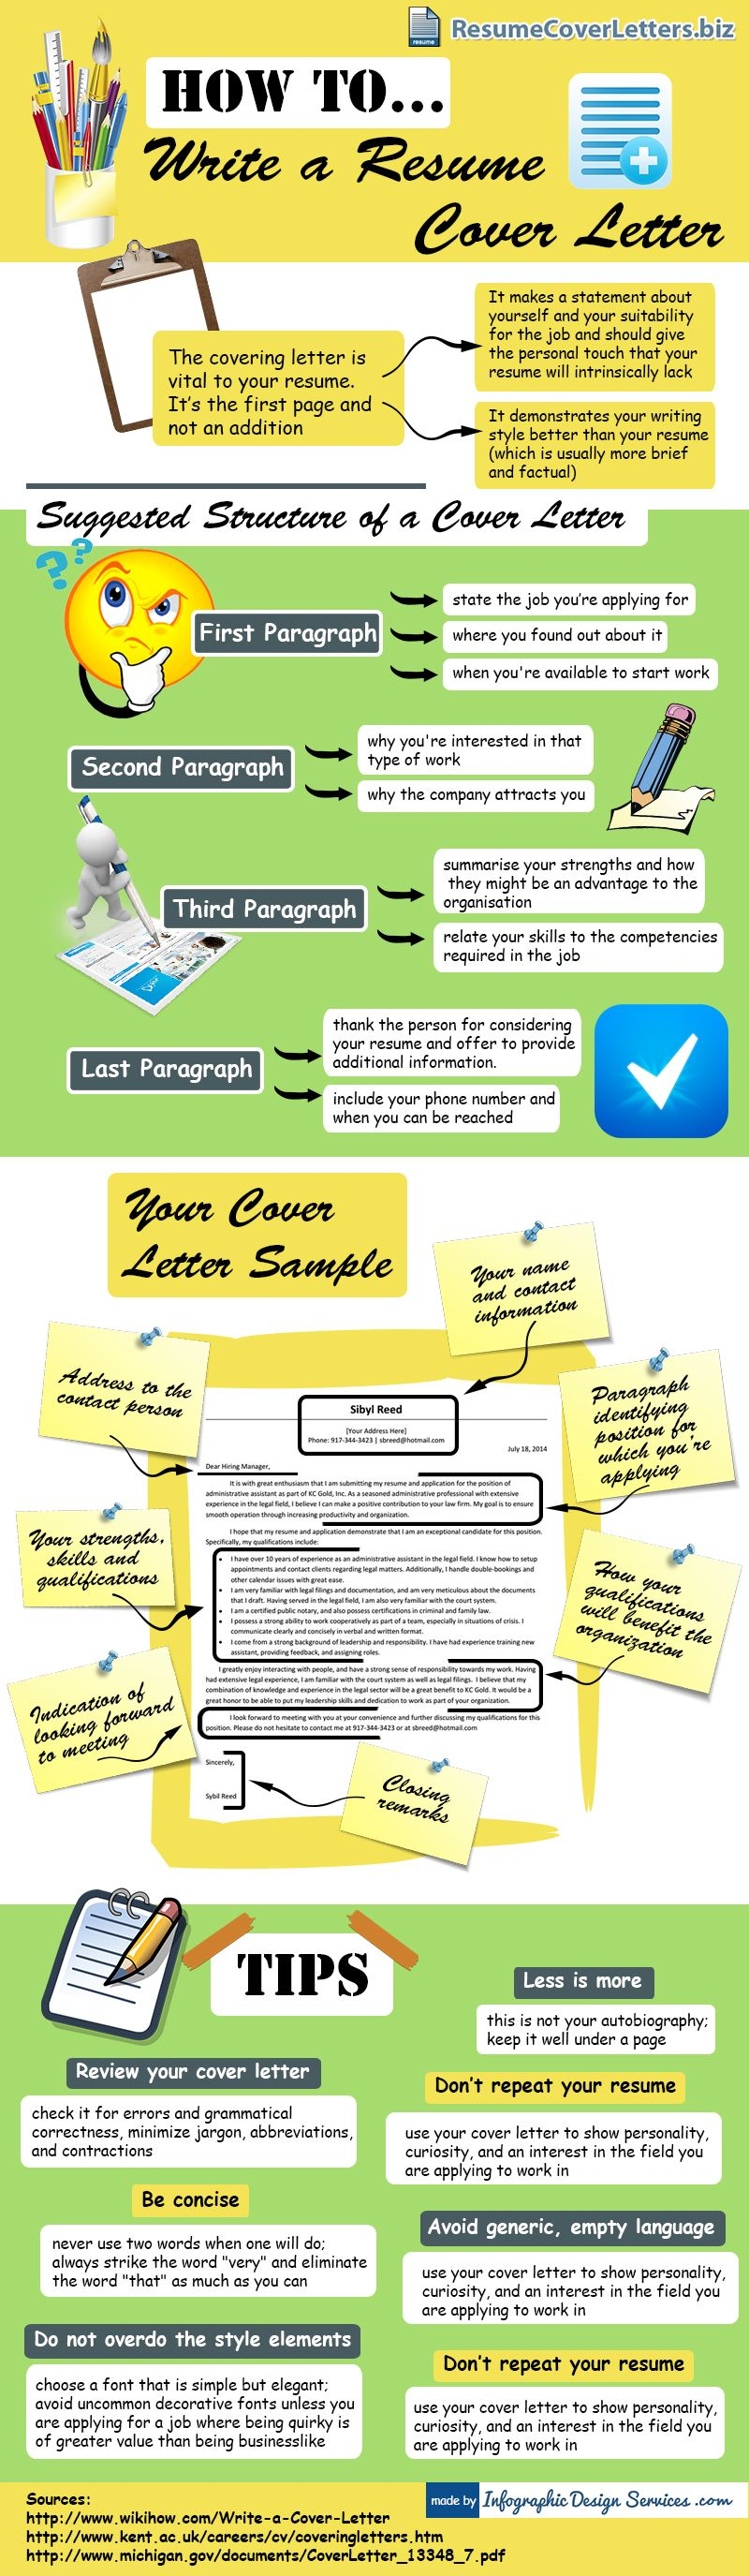 Resume Cover Letter Writing Tips  Business Stuff